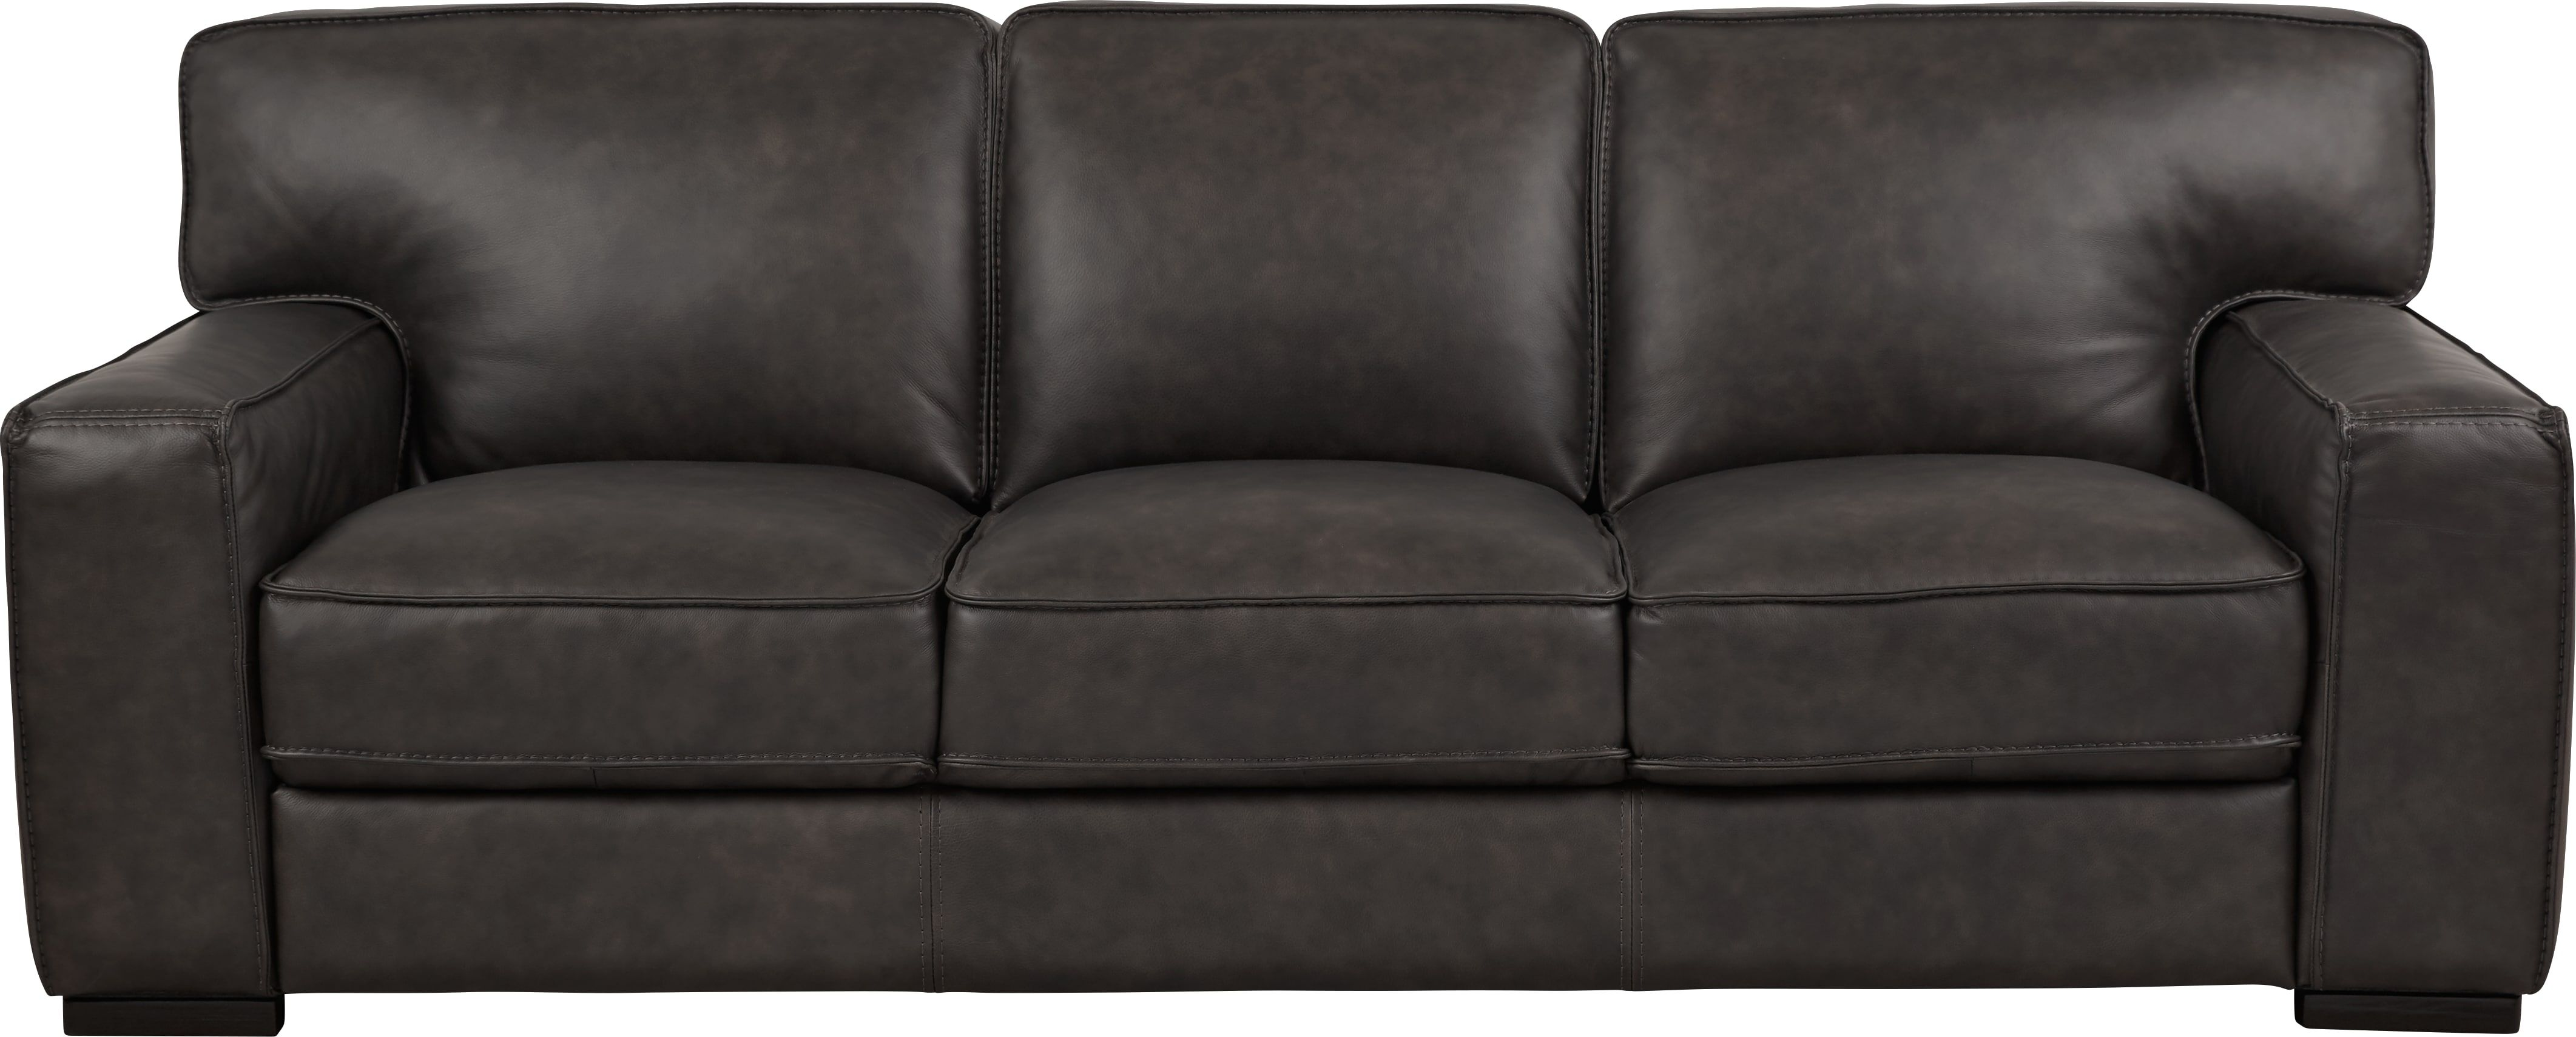 Deangelo Dark Gray Leather Sofa Grey Leather Sofa Leather Sofa Dark Grey Couch Living Room